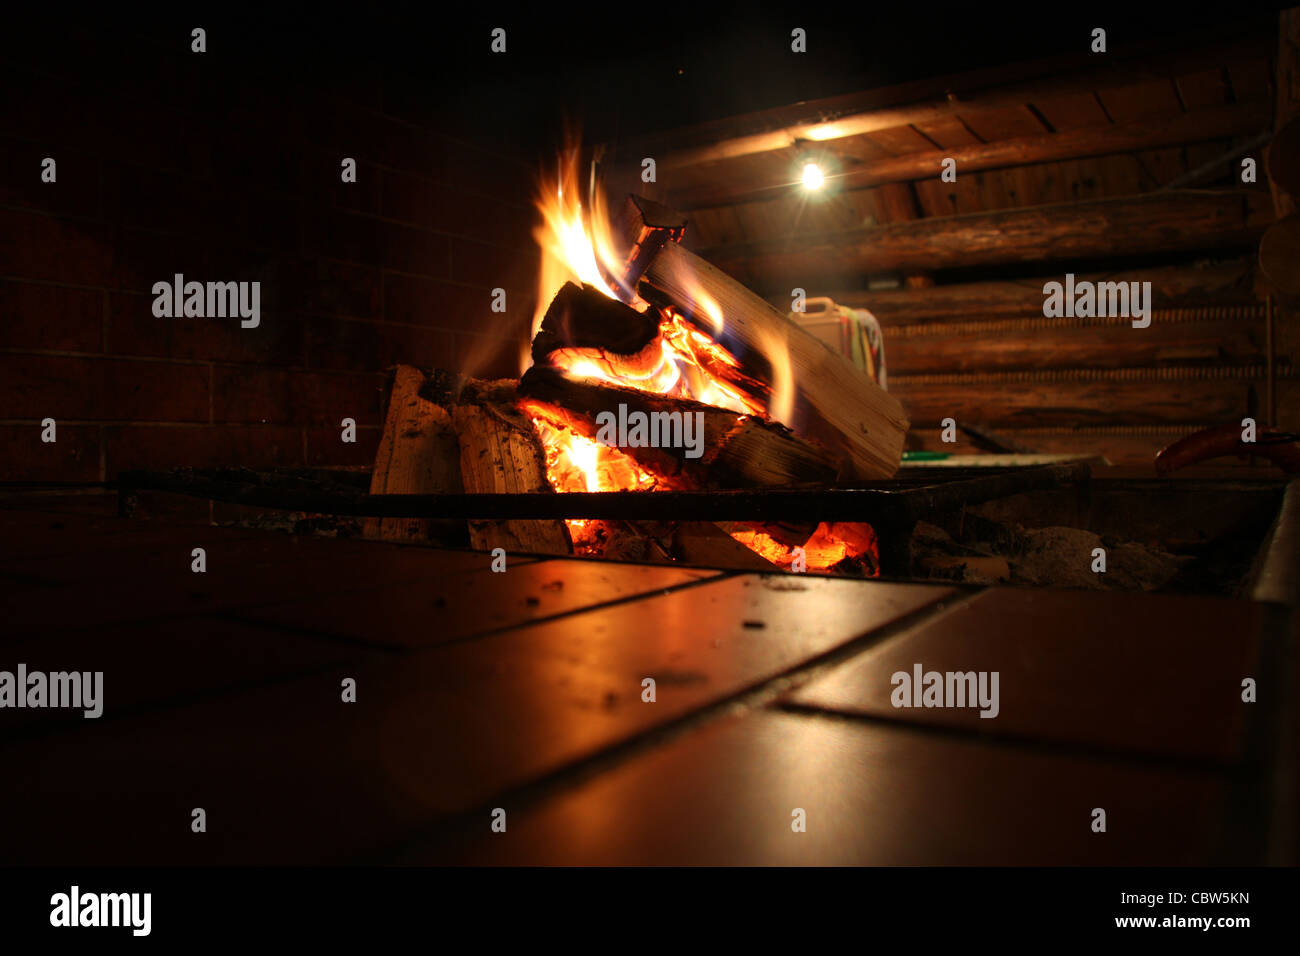 Fire place - Stock Image